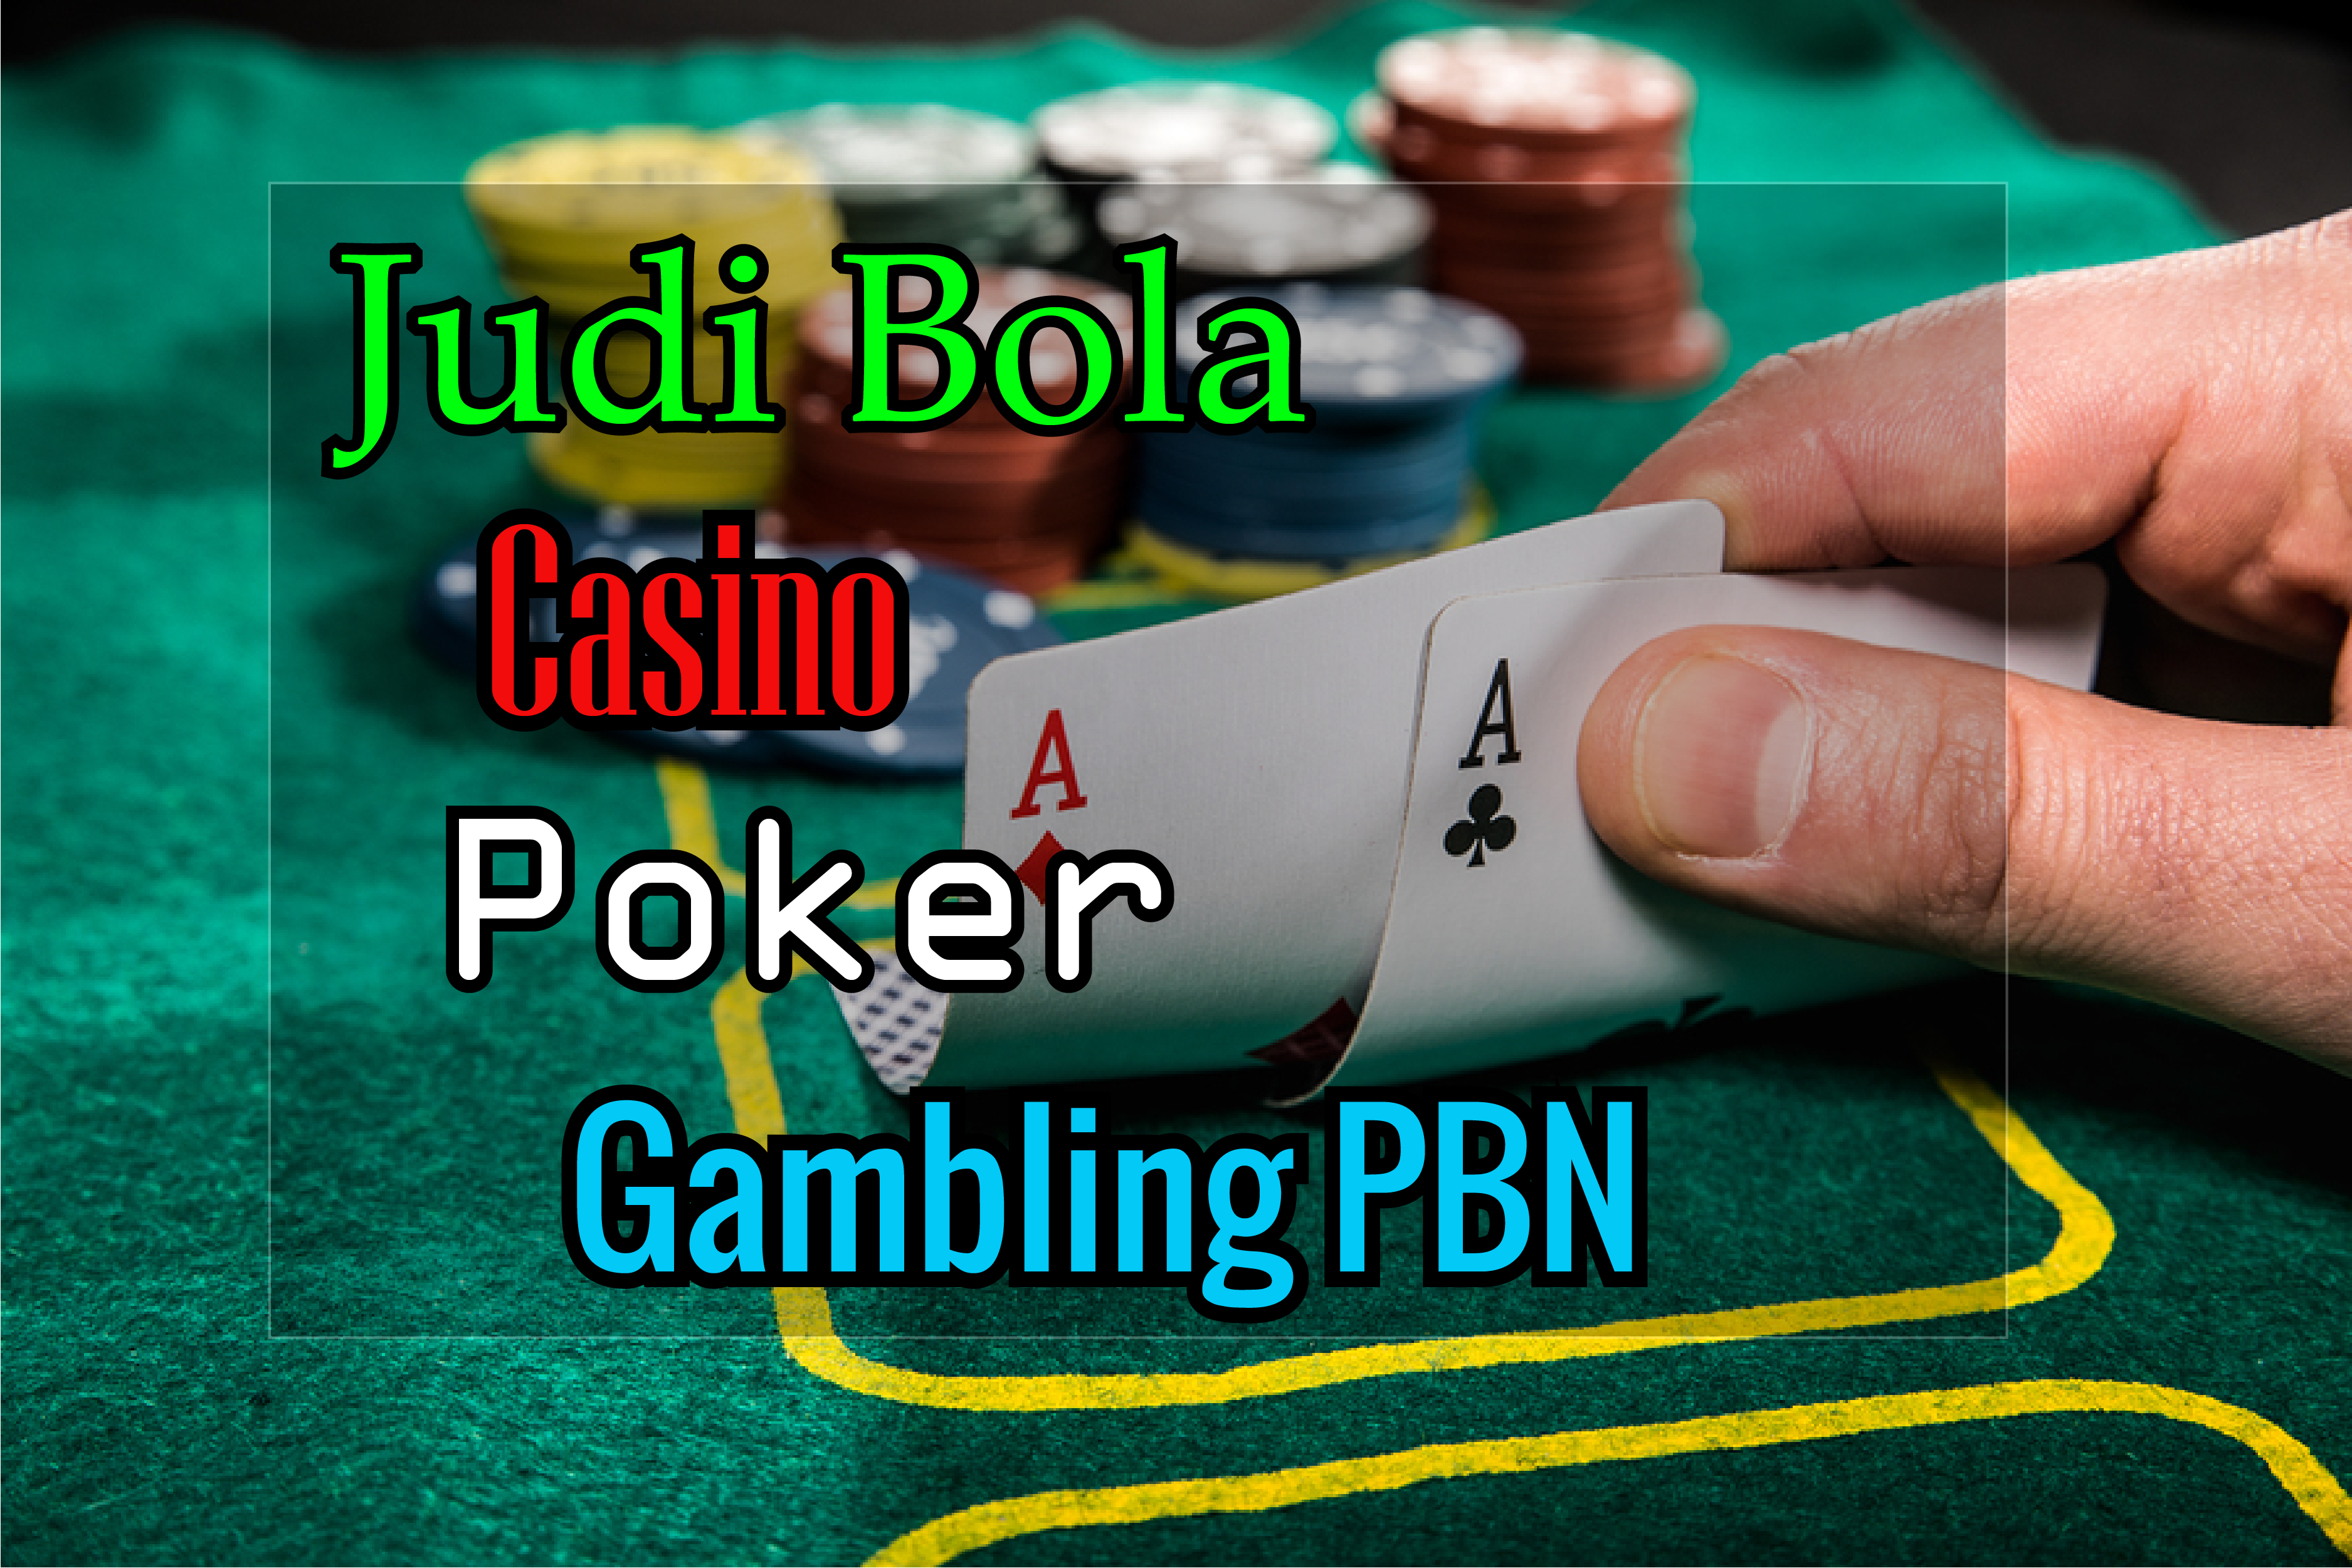 Build 205 judi Bola,  Casino,  Poker and Gambling PBN Post links with high DA/DR/TF/Traffic Homepage B